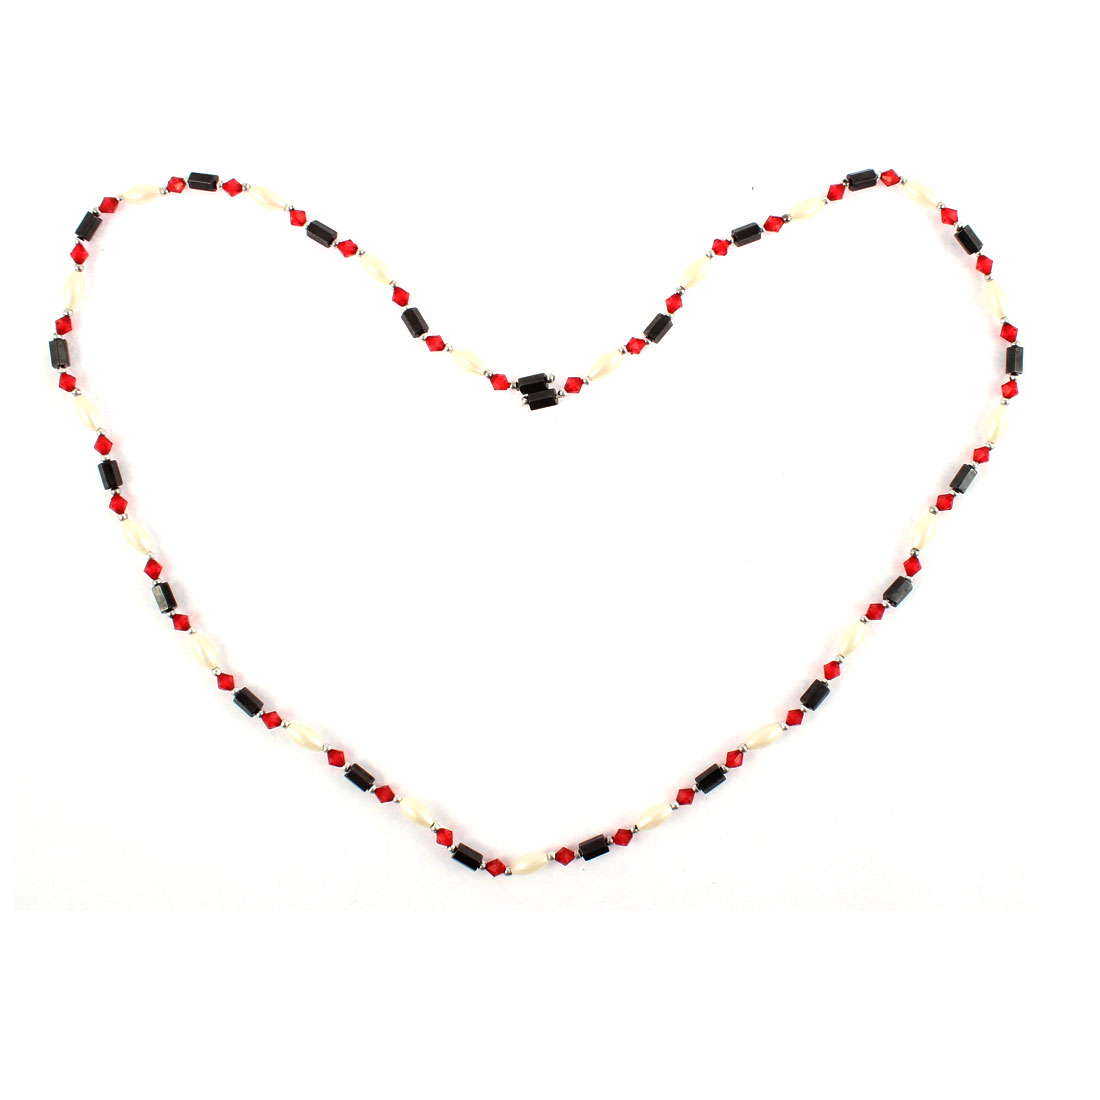 Women Magnet Hematite Beads Magnetic Clasp Bracelet Choker Necklace Red